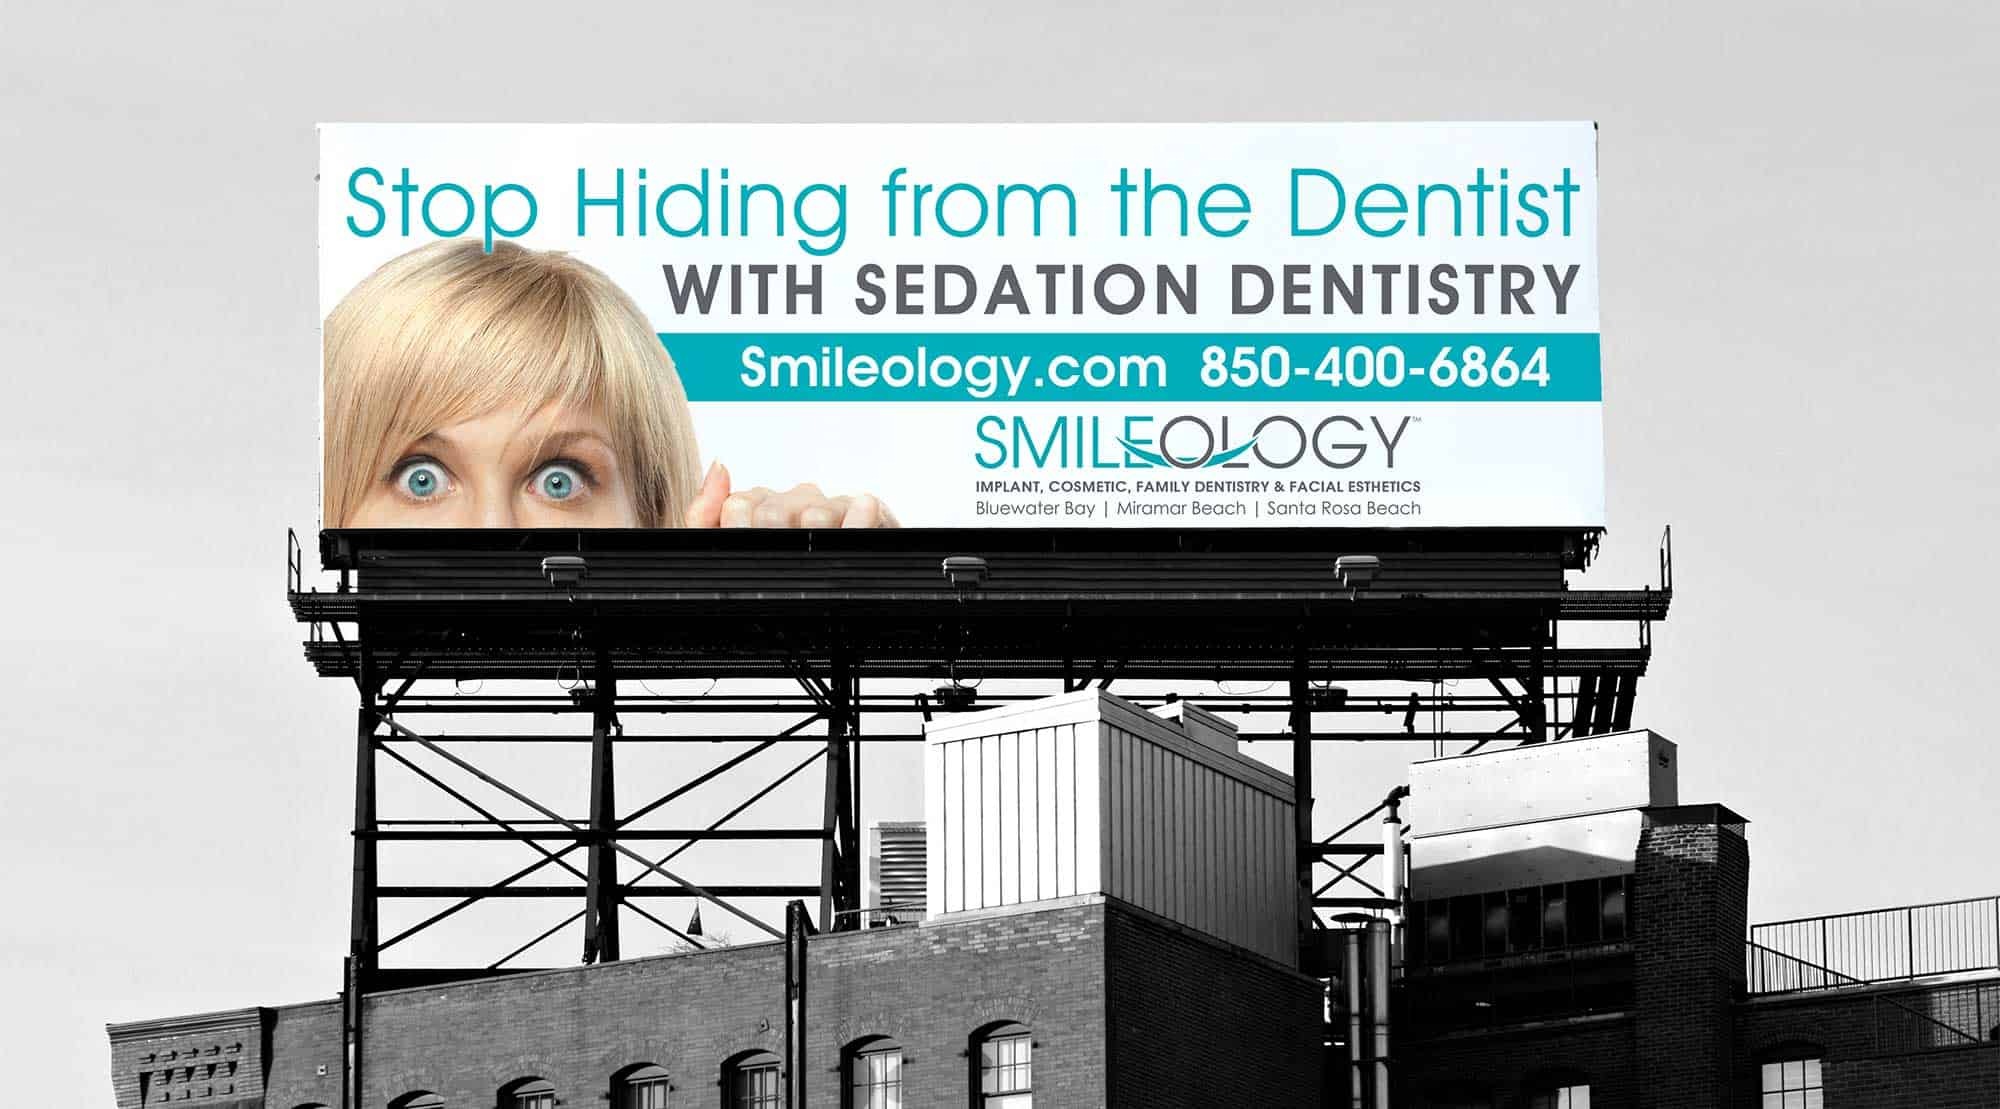 sedation dentistry billboard